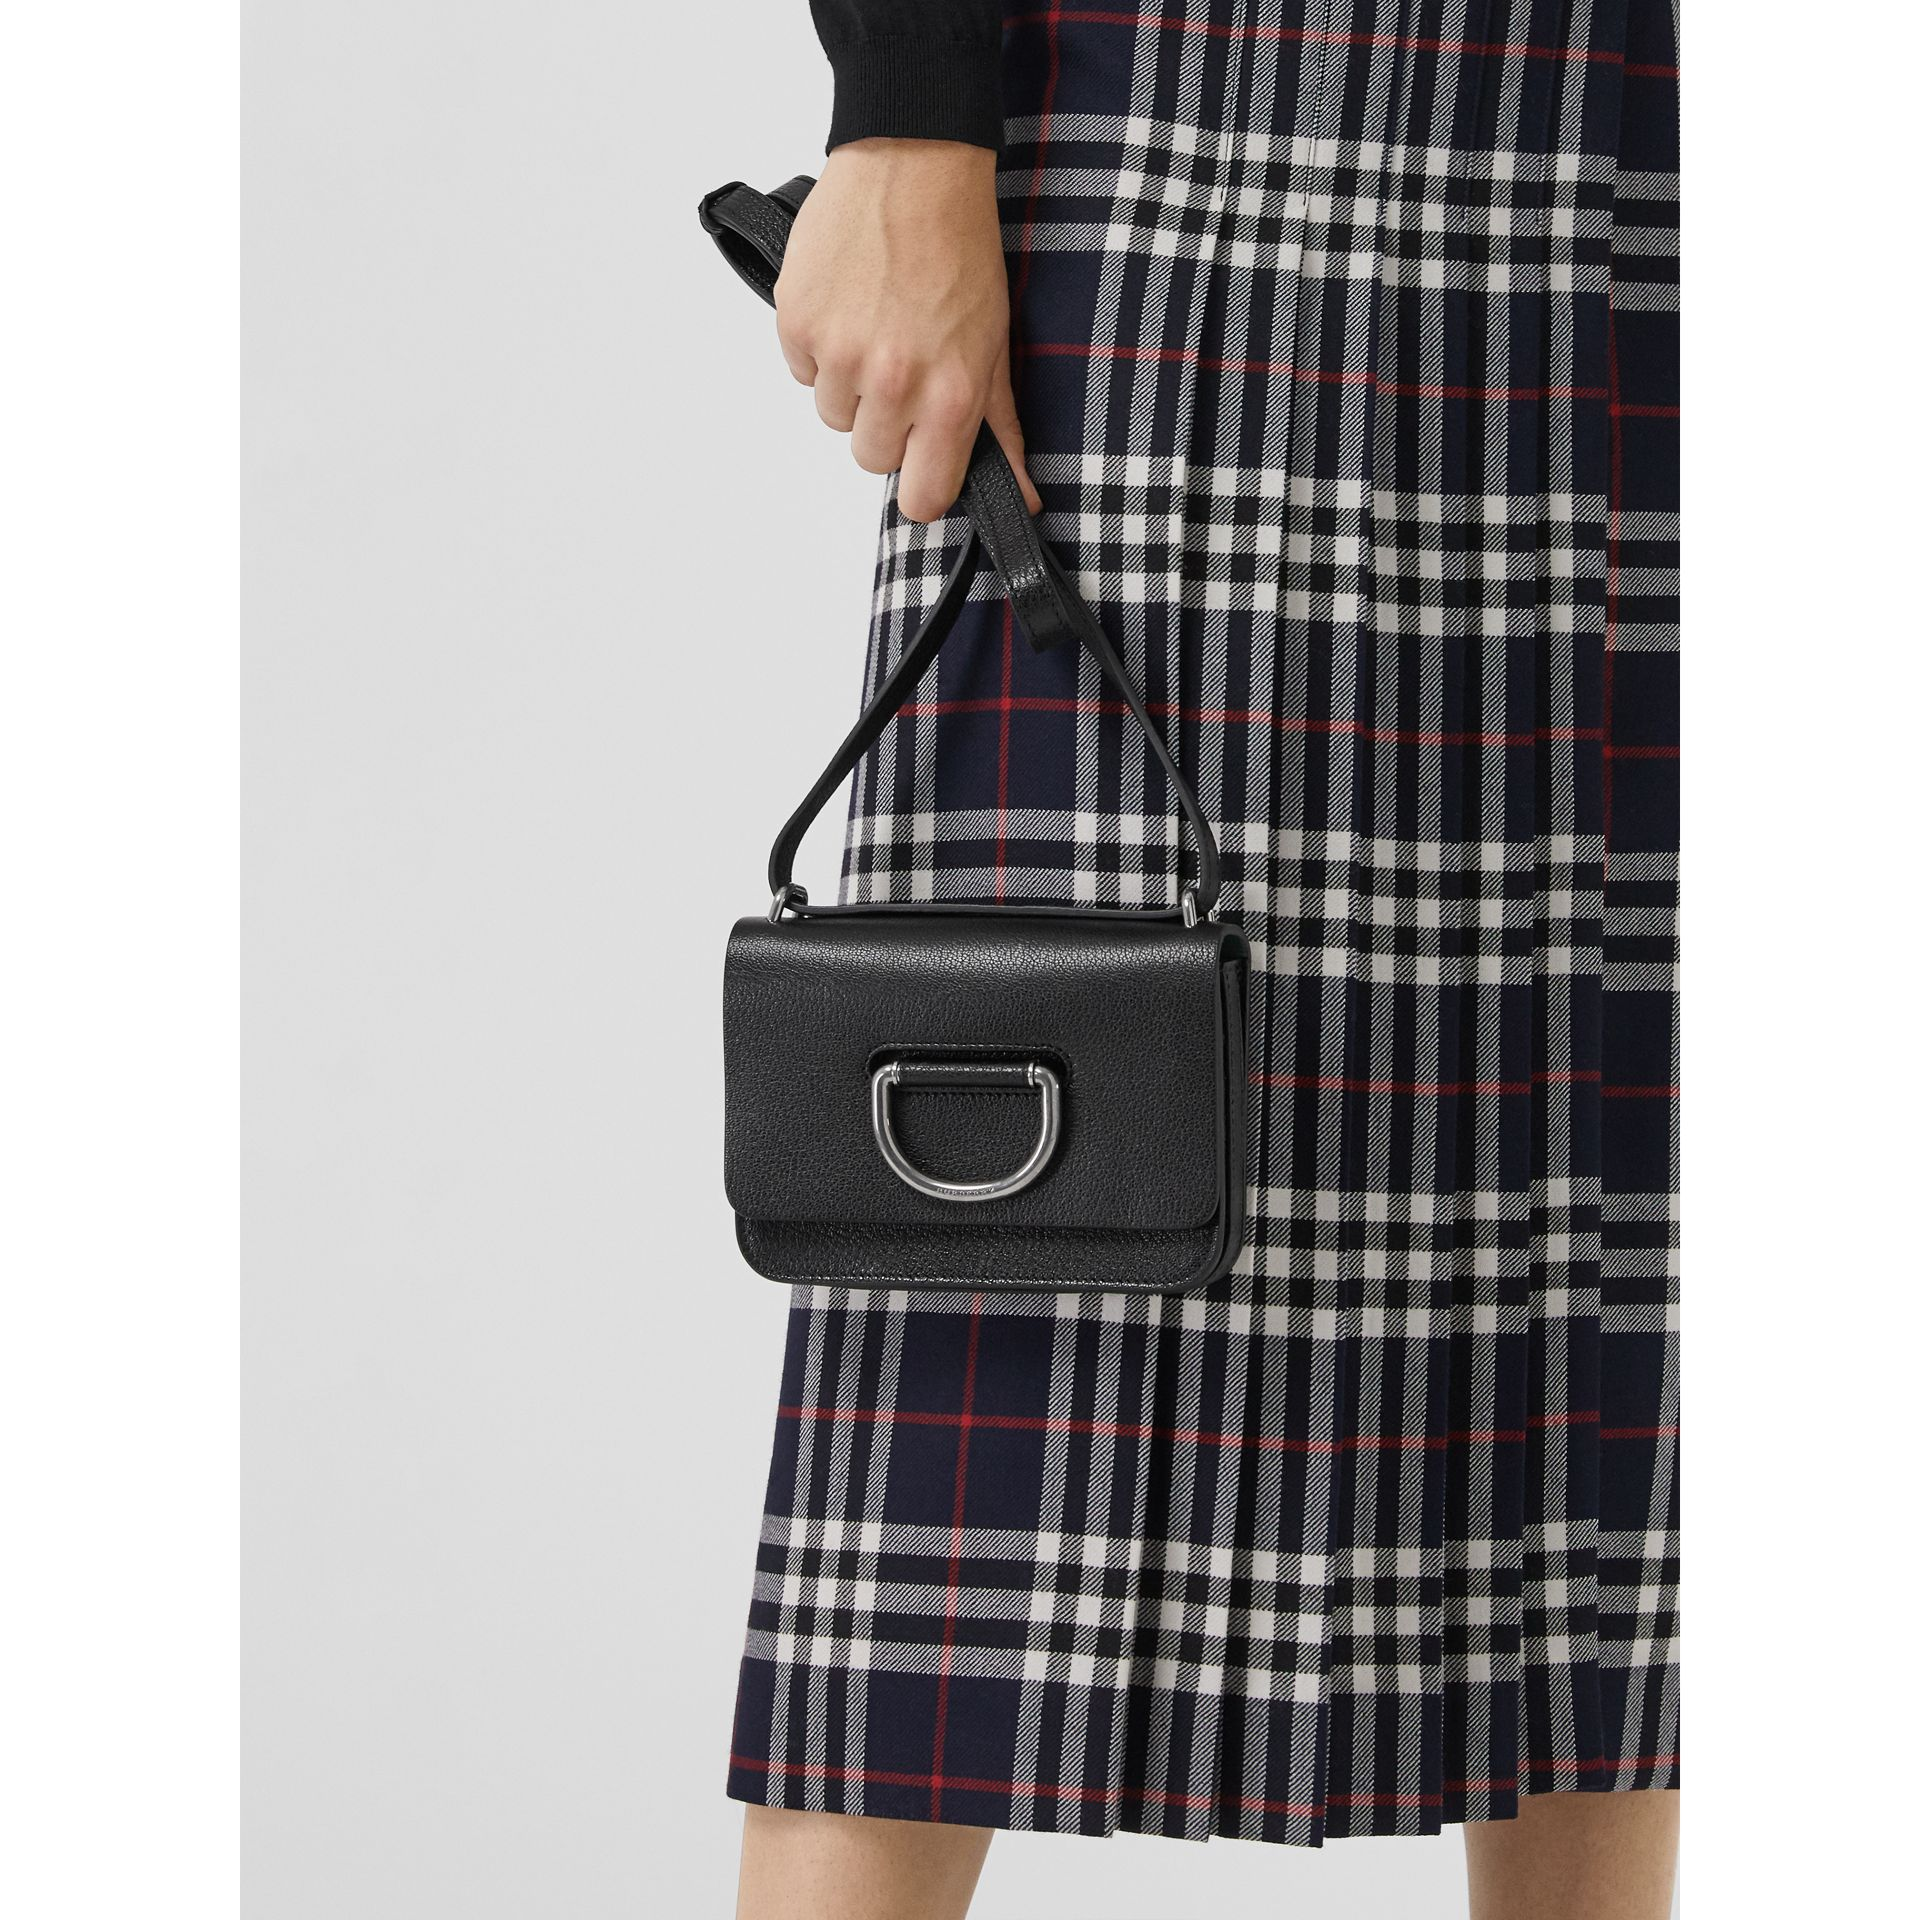 Borsa The D-ring mini in pelle (Nero) - Donna | Burberry - immagine della galleria 3